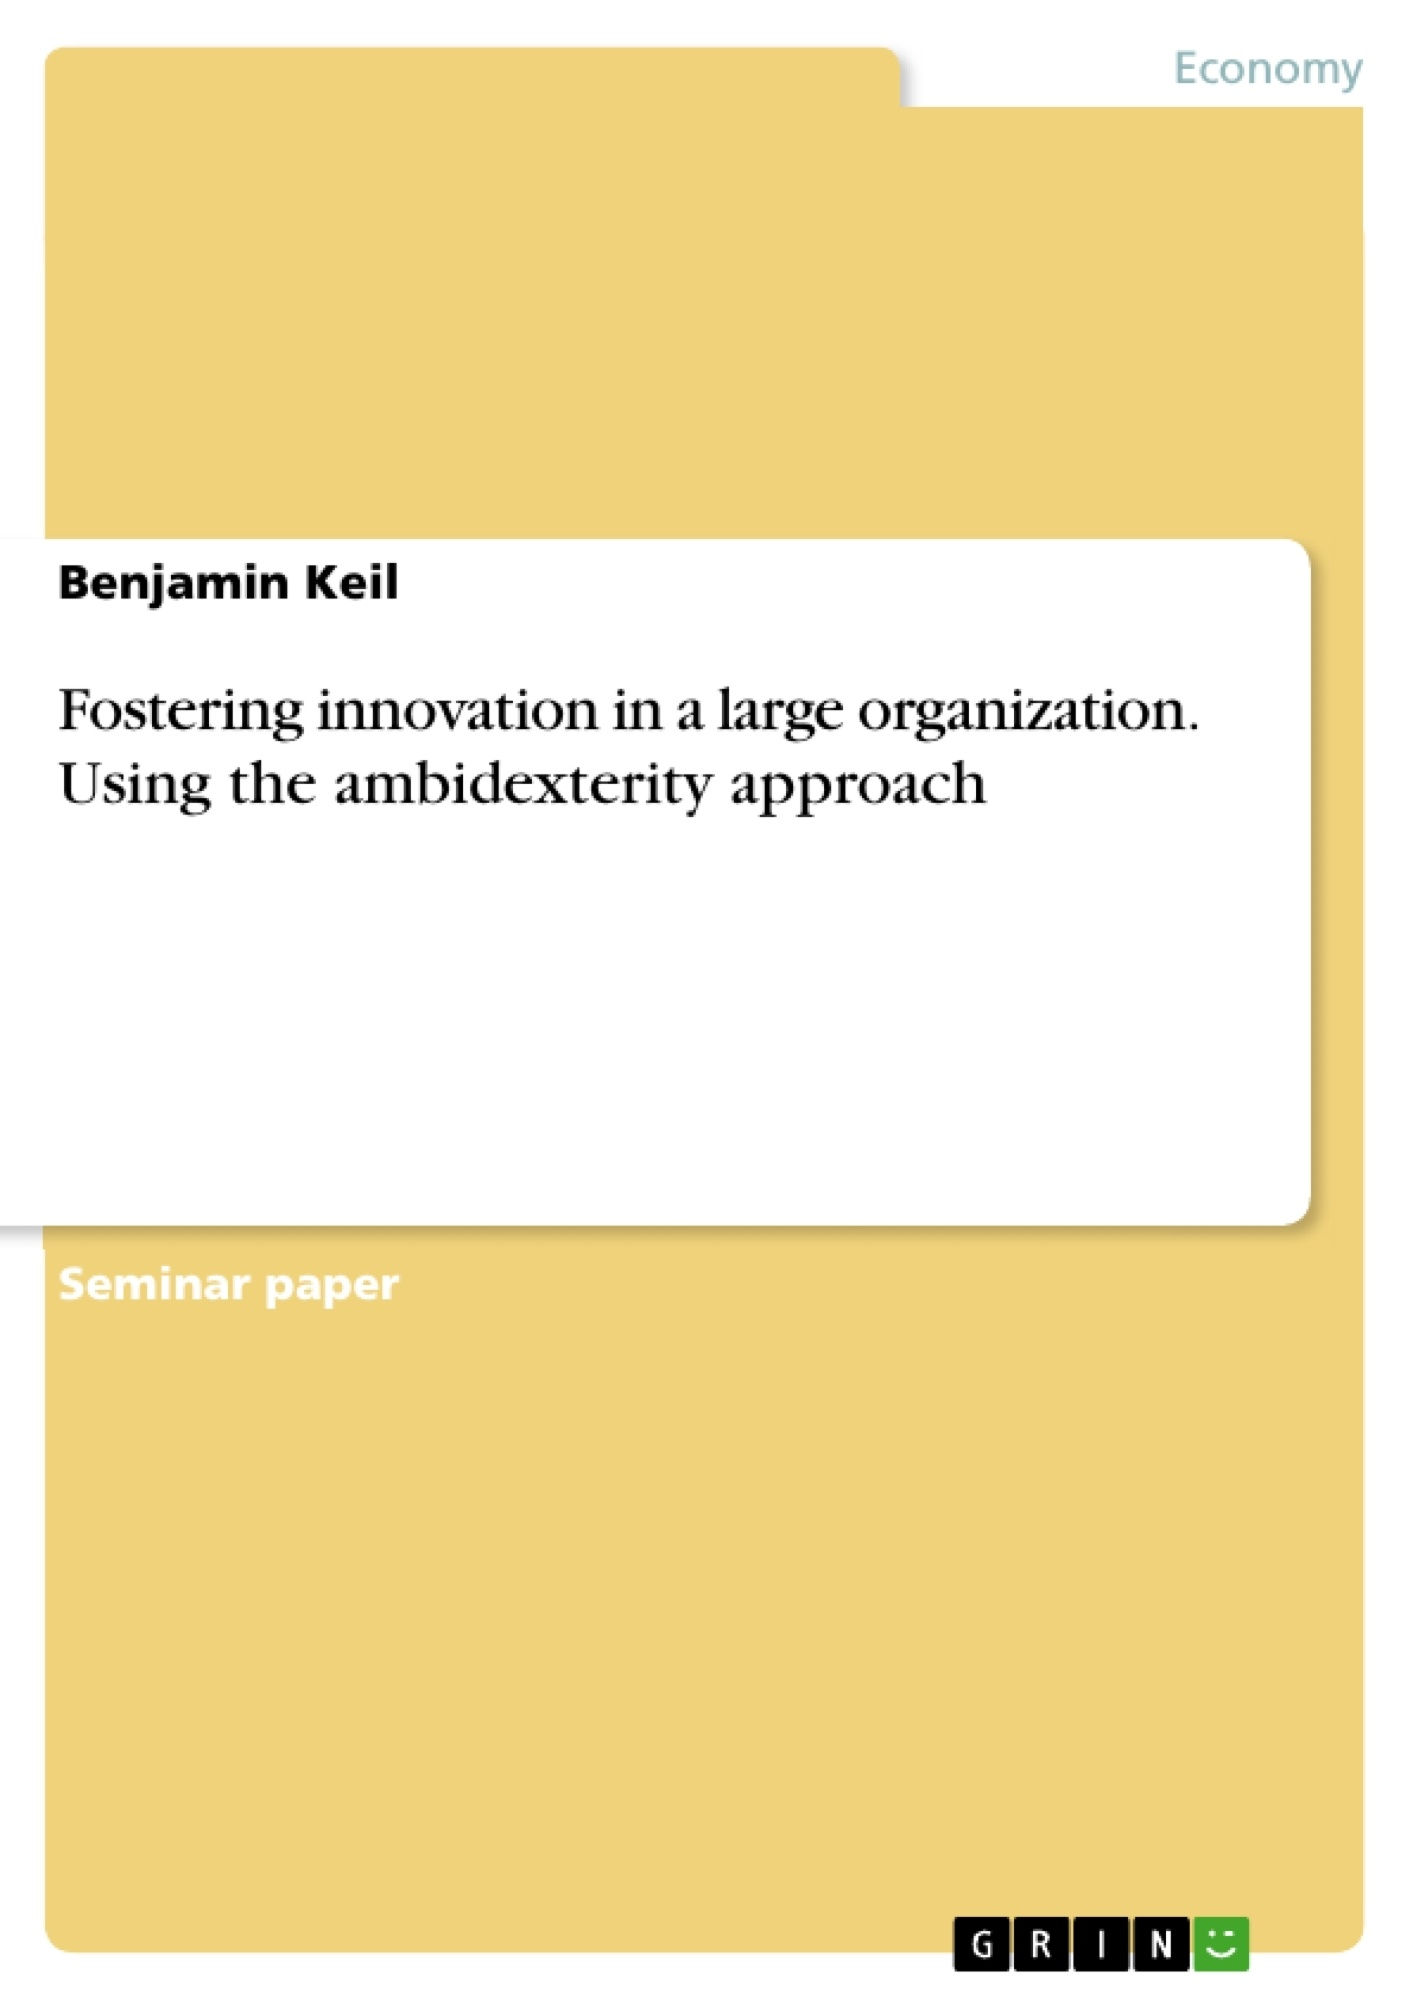 Title: Fostering innovation in a large organization. Using the ambidexterity approach